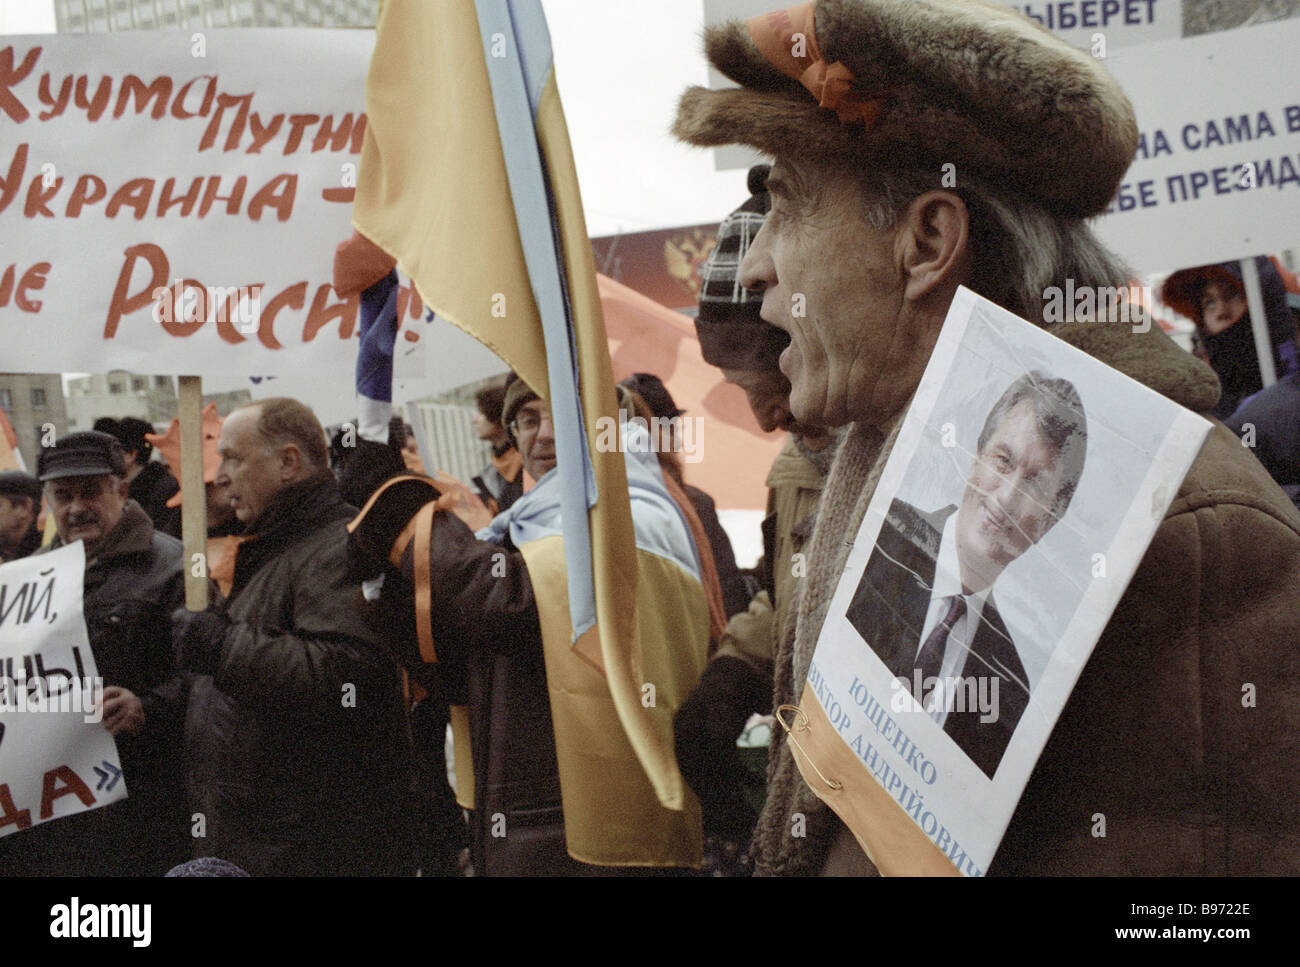 A meeting of SPS and Moscow s Ukranian diaspora representatives in support of Ukraine s presidential candidate Viktor - Stock Image